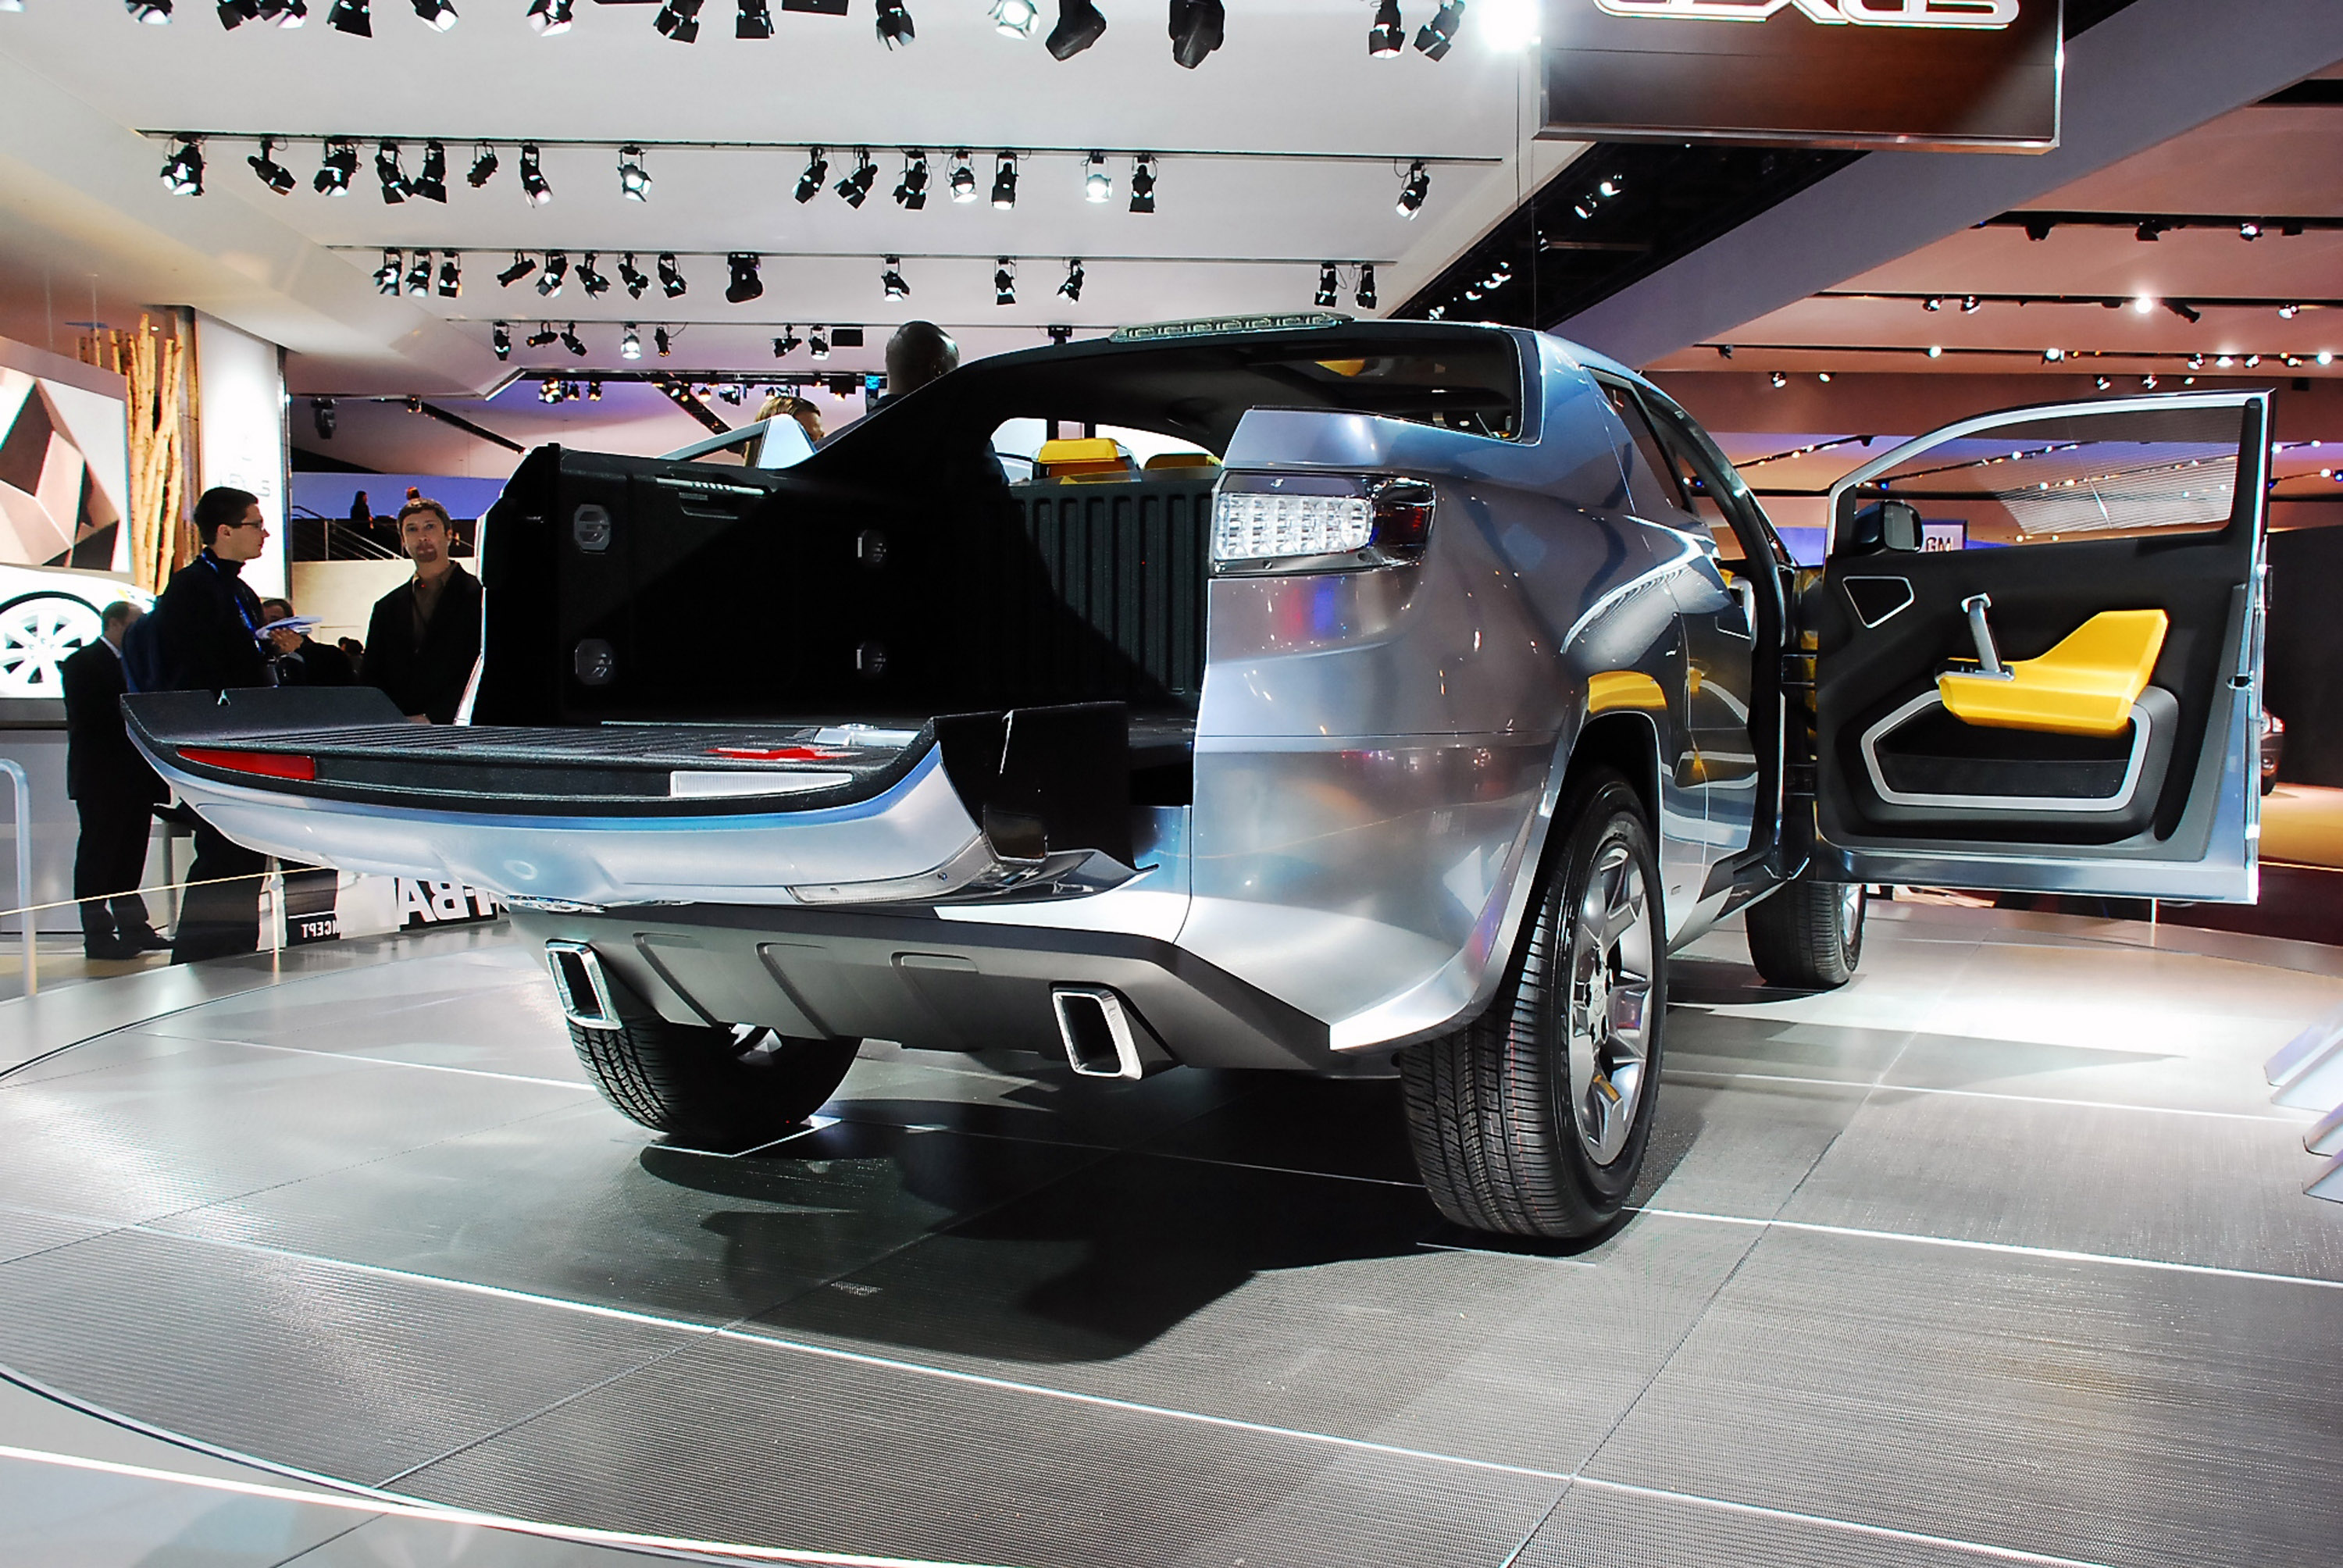 The turntable flooring is clad with the stainless steel wire mesh to display the most most cutting edge in auto design.